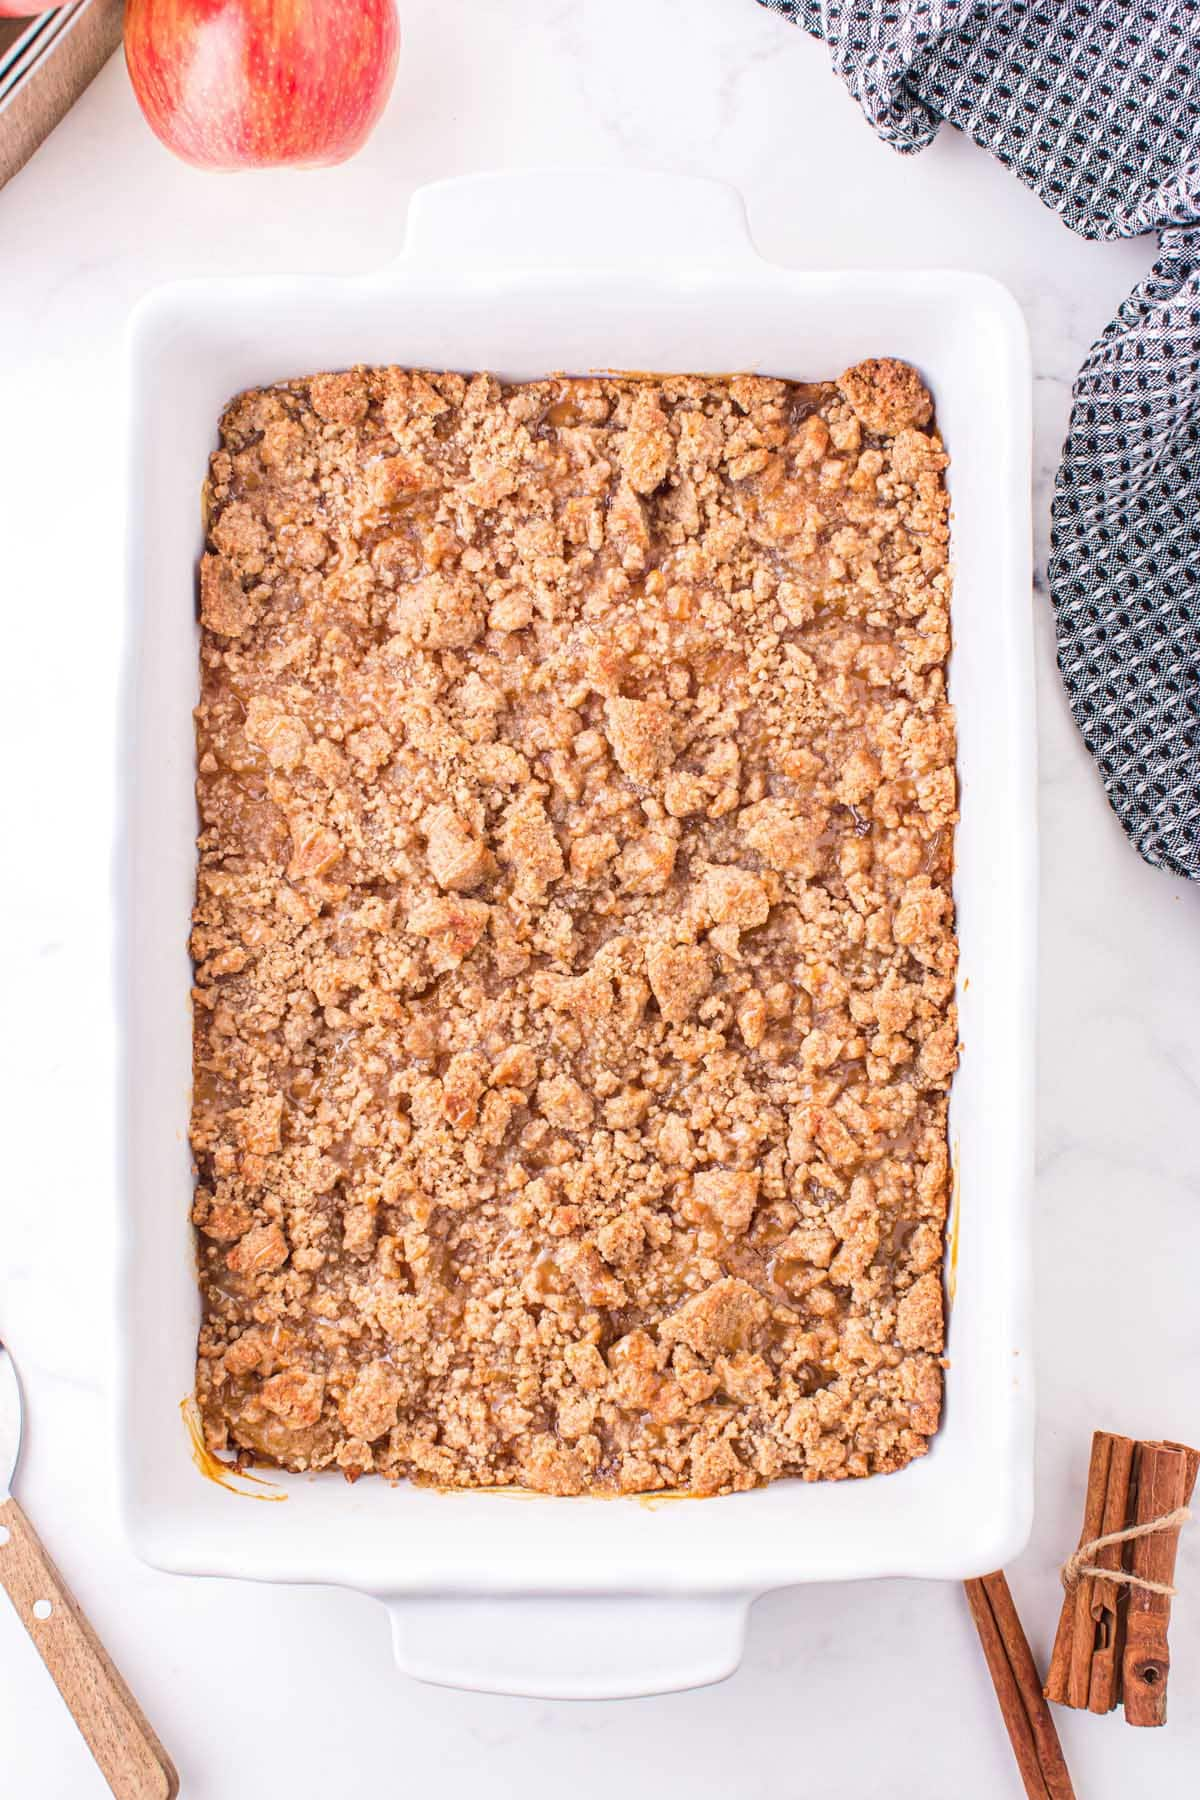 Drizzle caramel syrup over the streusel